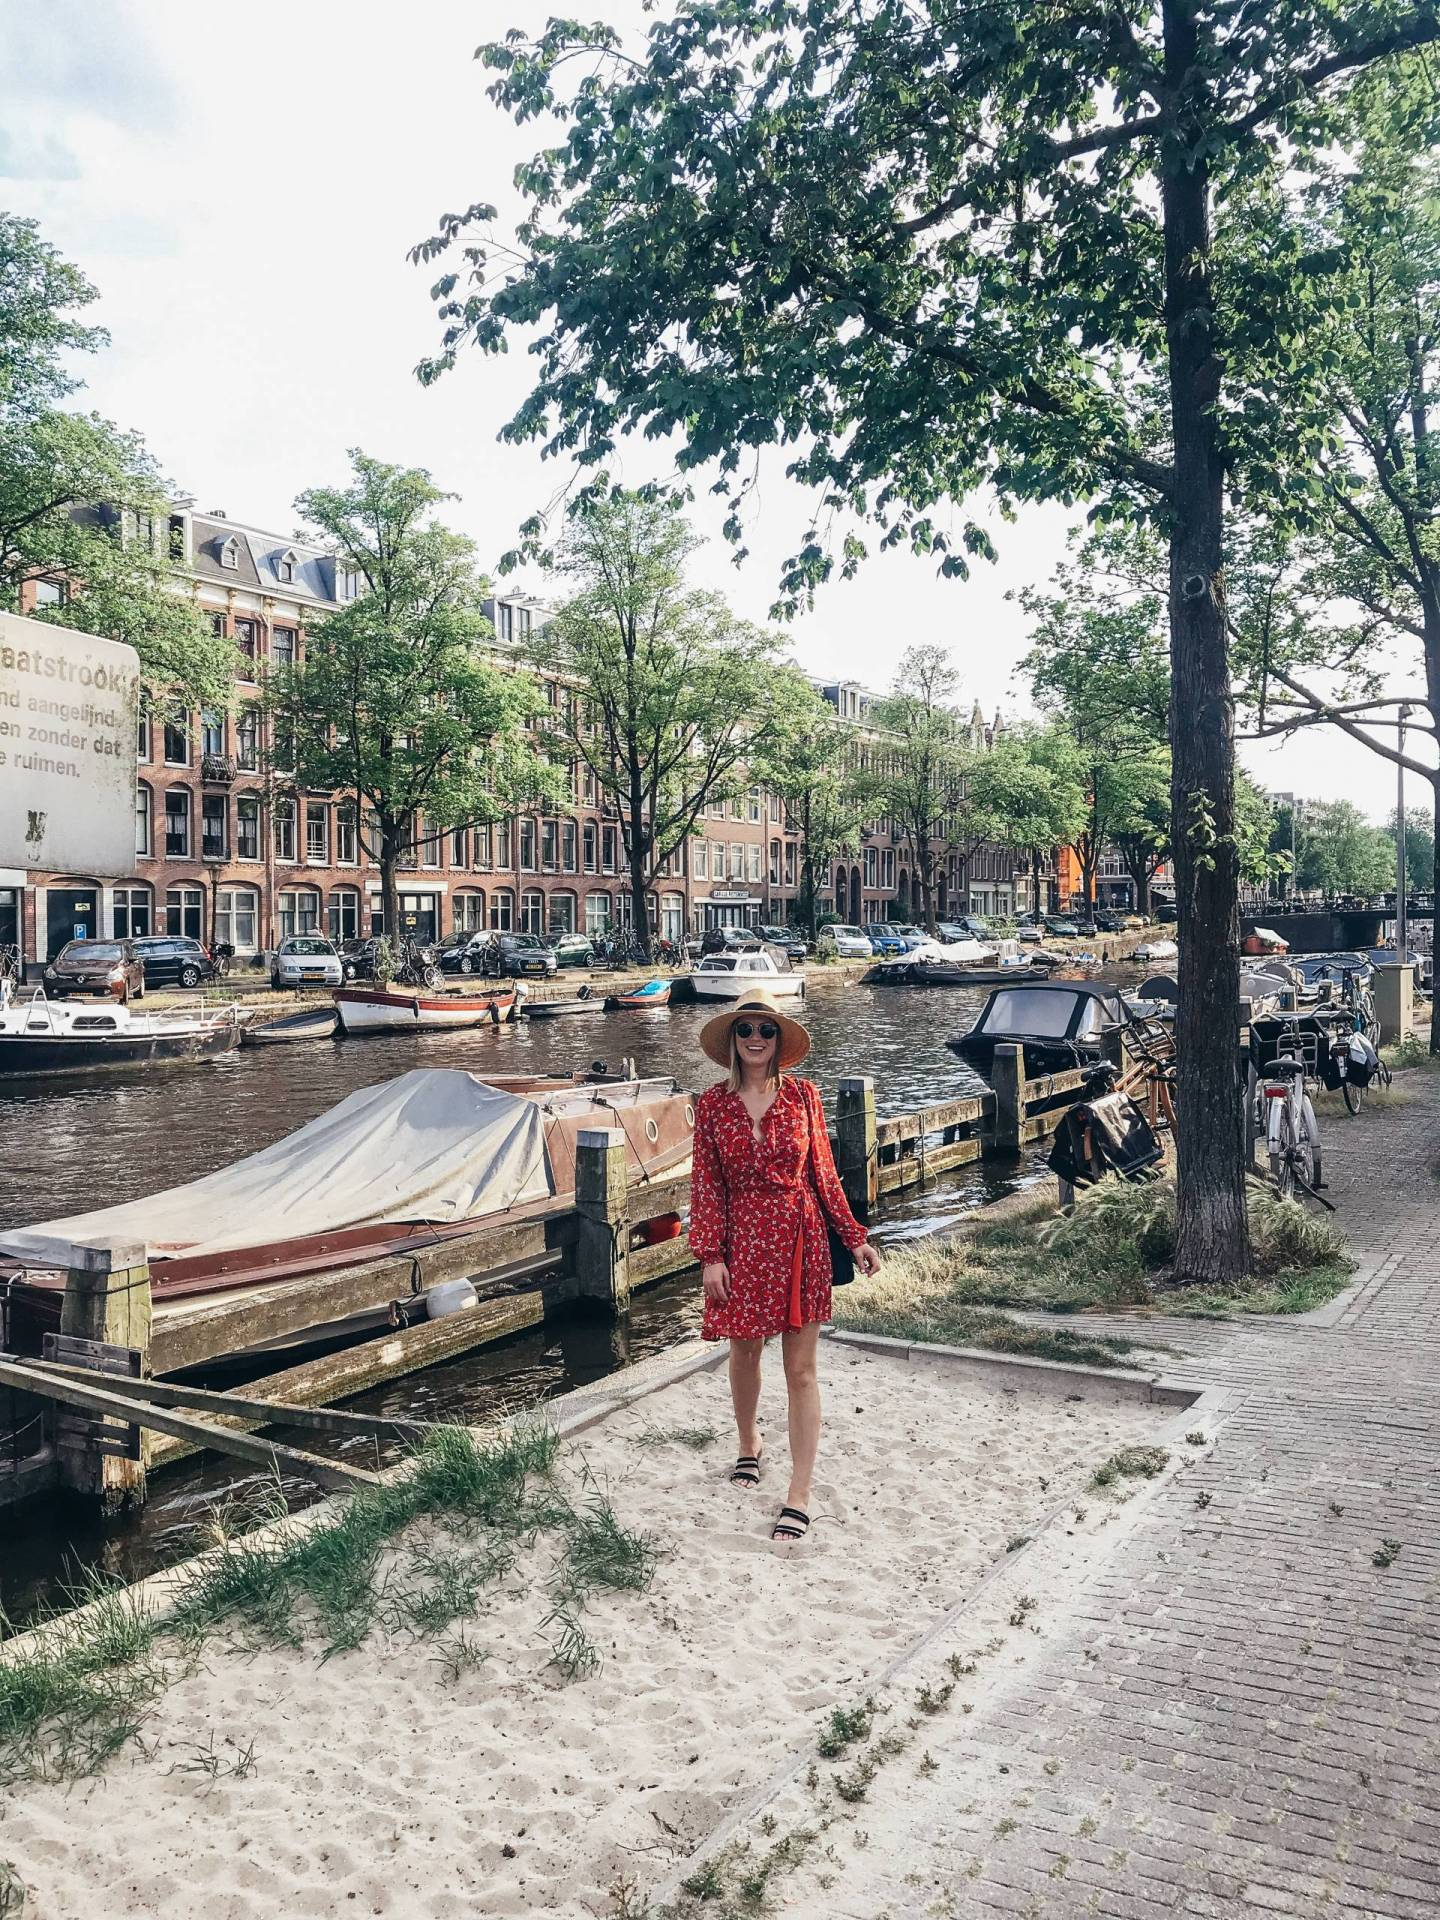 Wondering what to wear in Amsterdam? The weather in the Summer is pretty mild so this Glamorous wrap dress in vintage floral from ASOS was perfect with some sandals and a hat. Click through for a few more outfits I wore during our visit, plus what we did and where we ate!